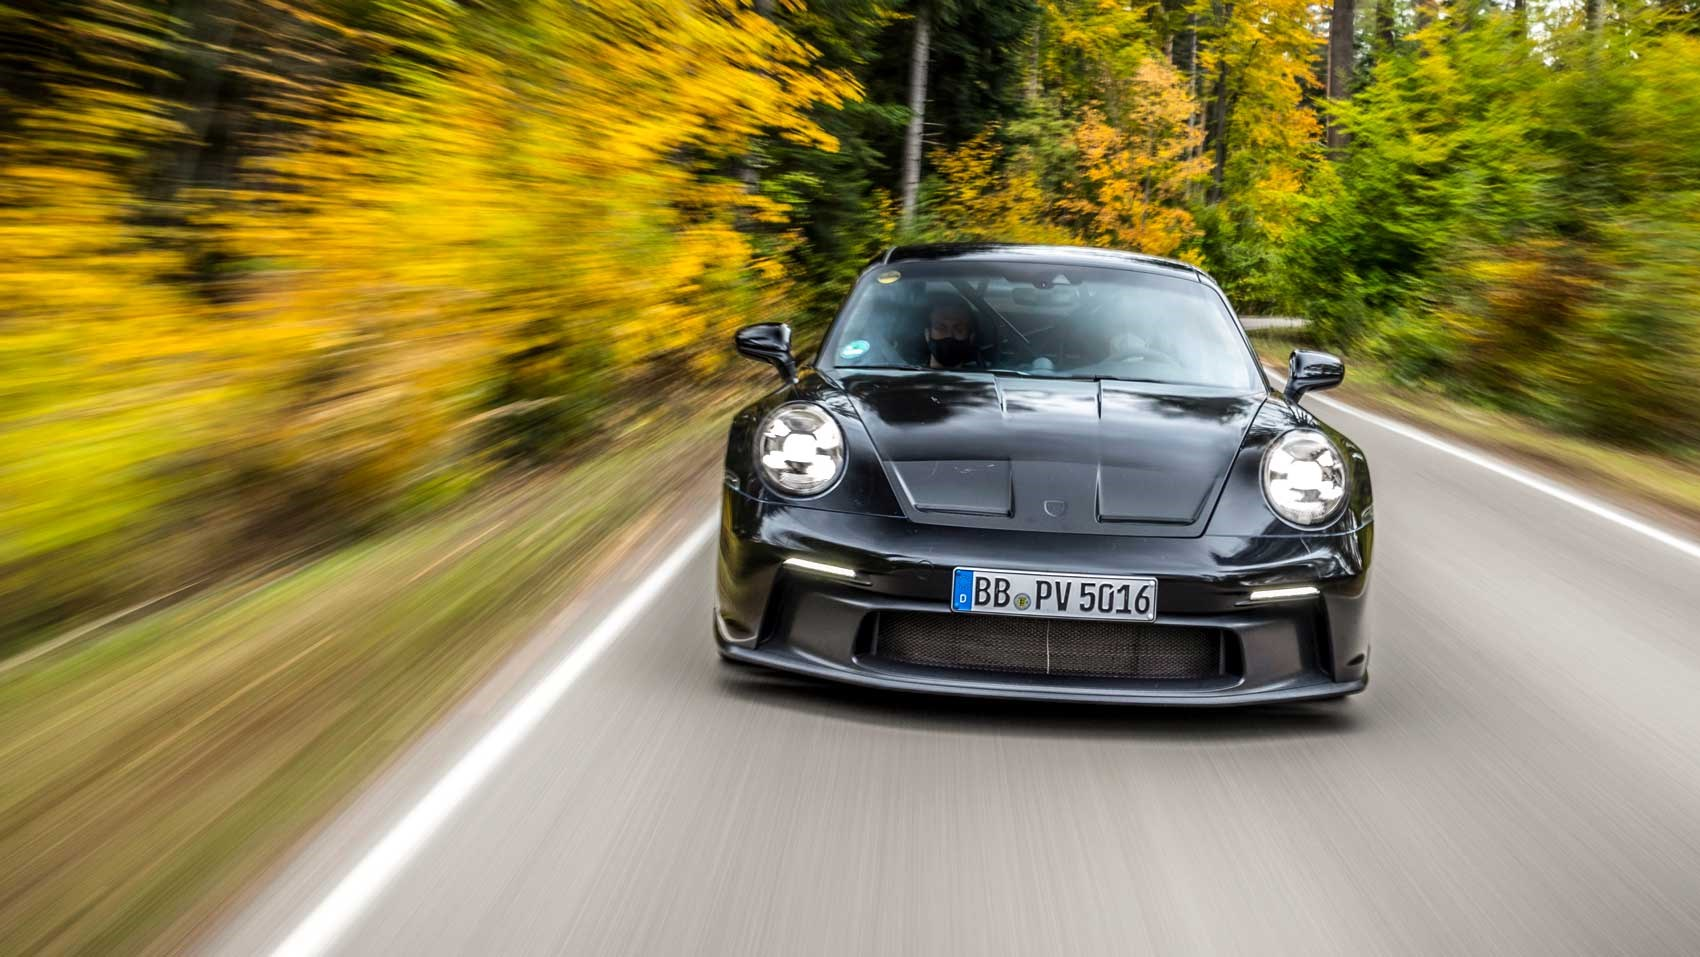 911 gt3 proto front tracking